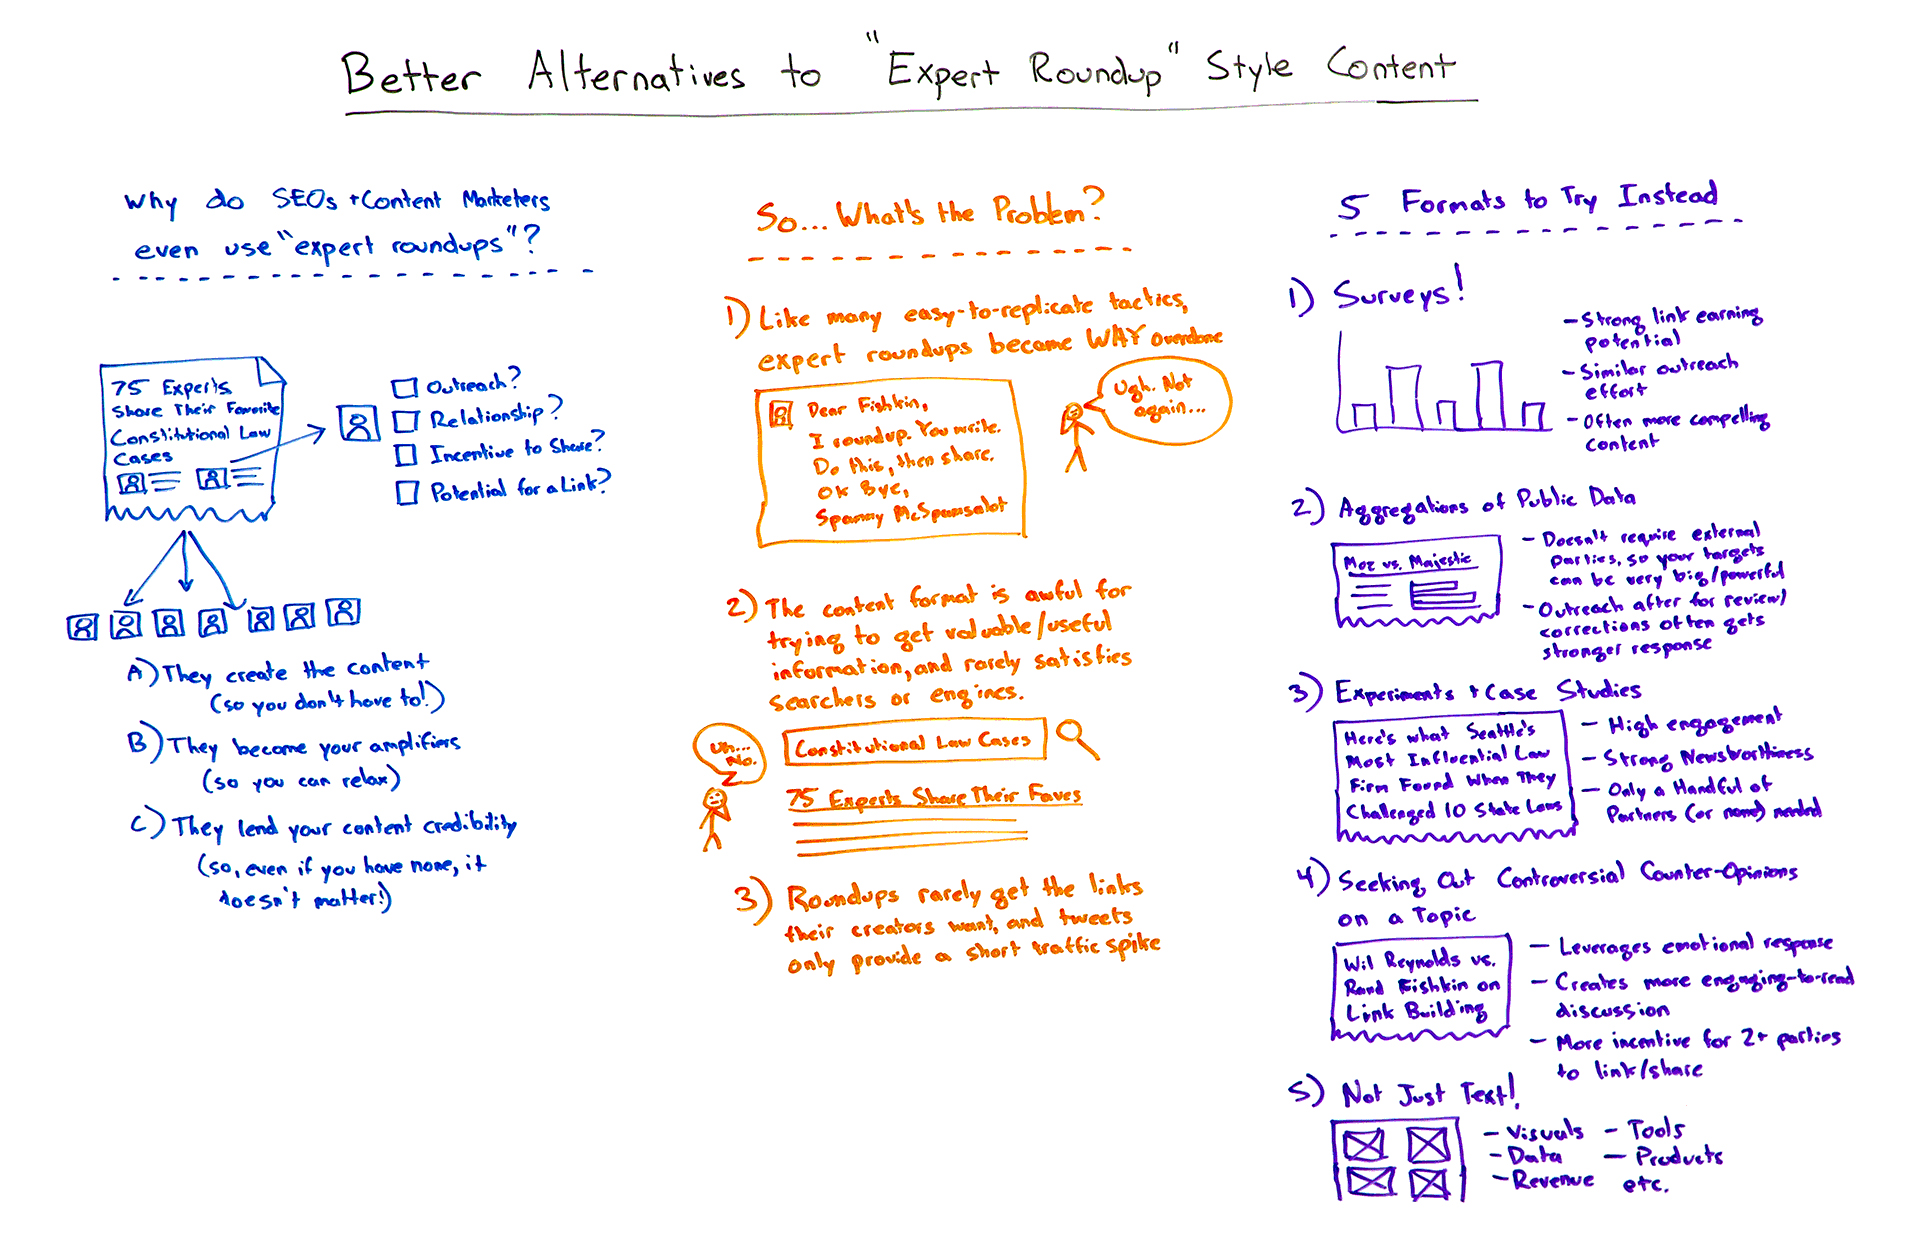 Alternatives to expert roundup style content